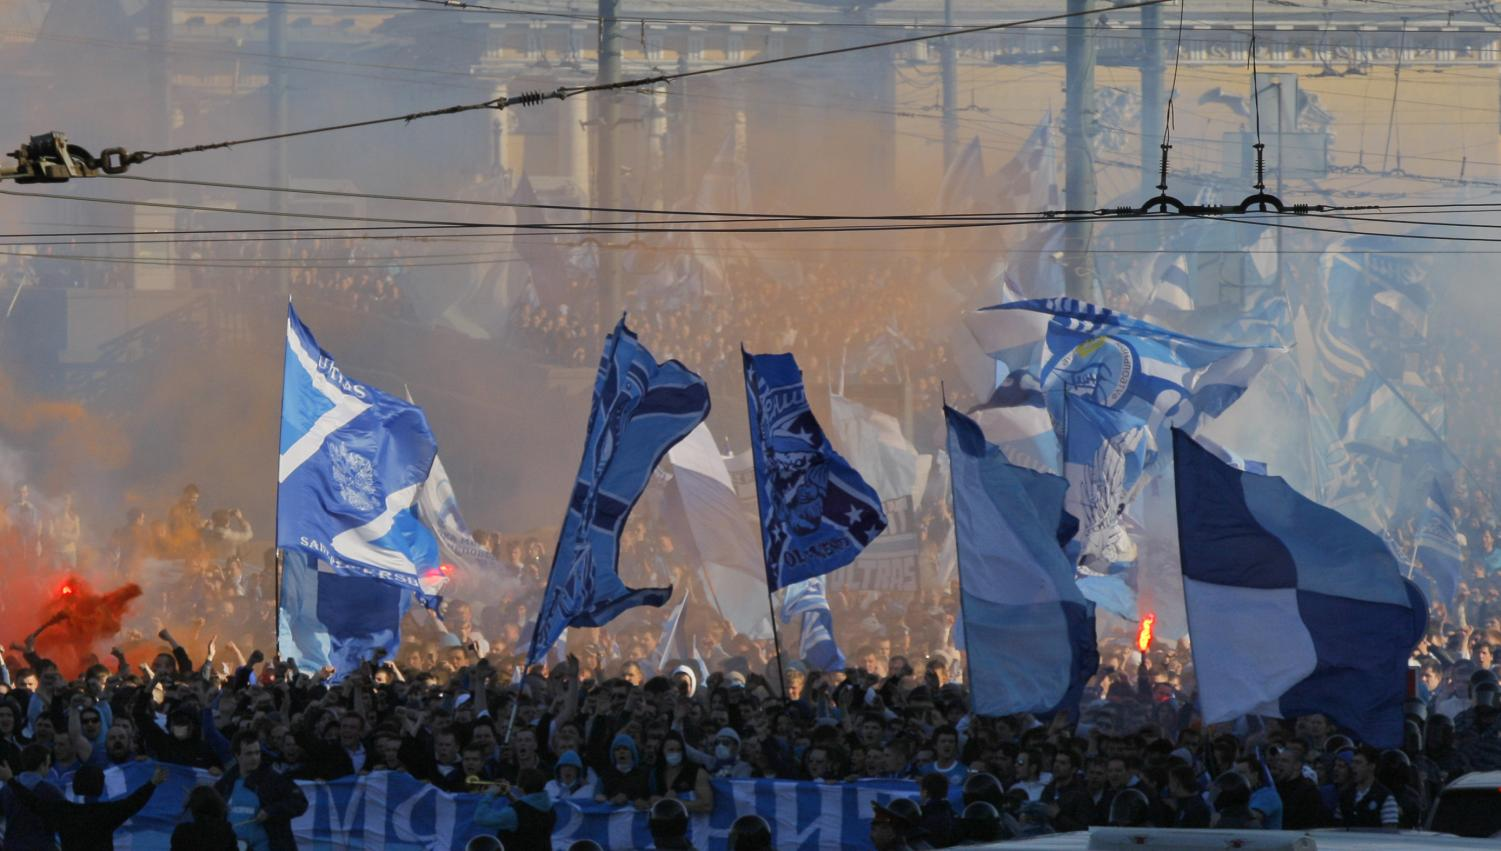 Zenit's fans march prior to their national soccer Championship in downtown St.Petersburg, Russia. Racist and anti-gay chants have become more common in Russian soccer as the country prepares to host the World Cup, even as overall incidents of discrimination declined.